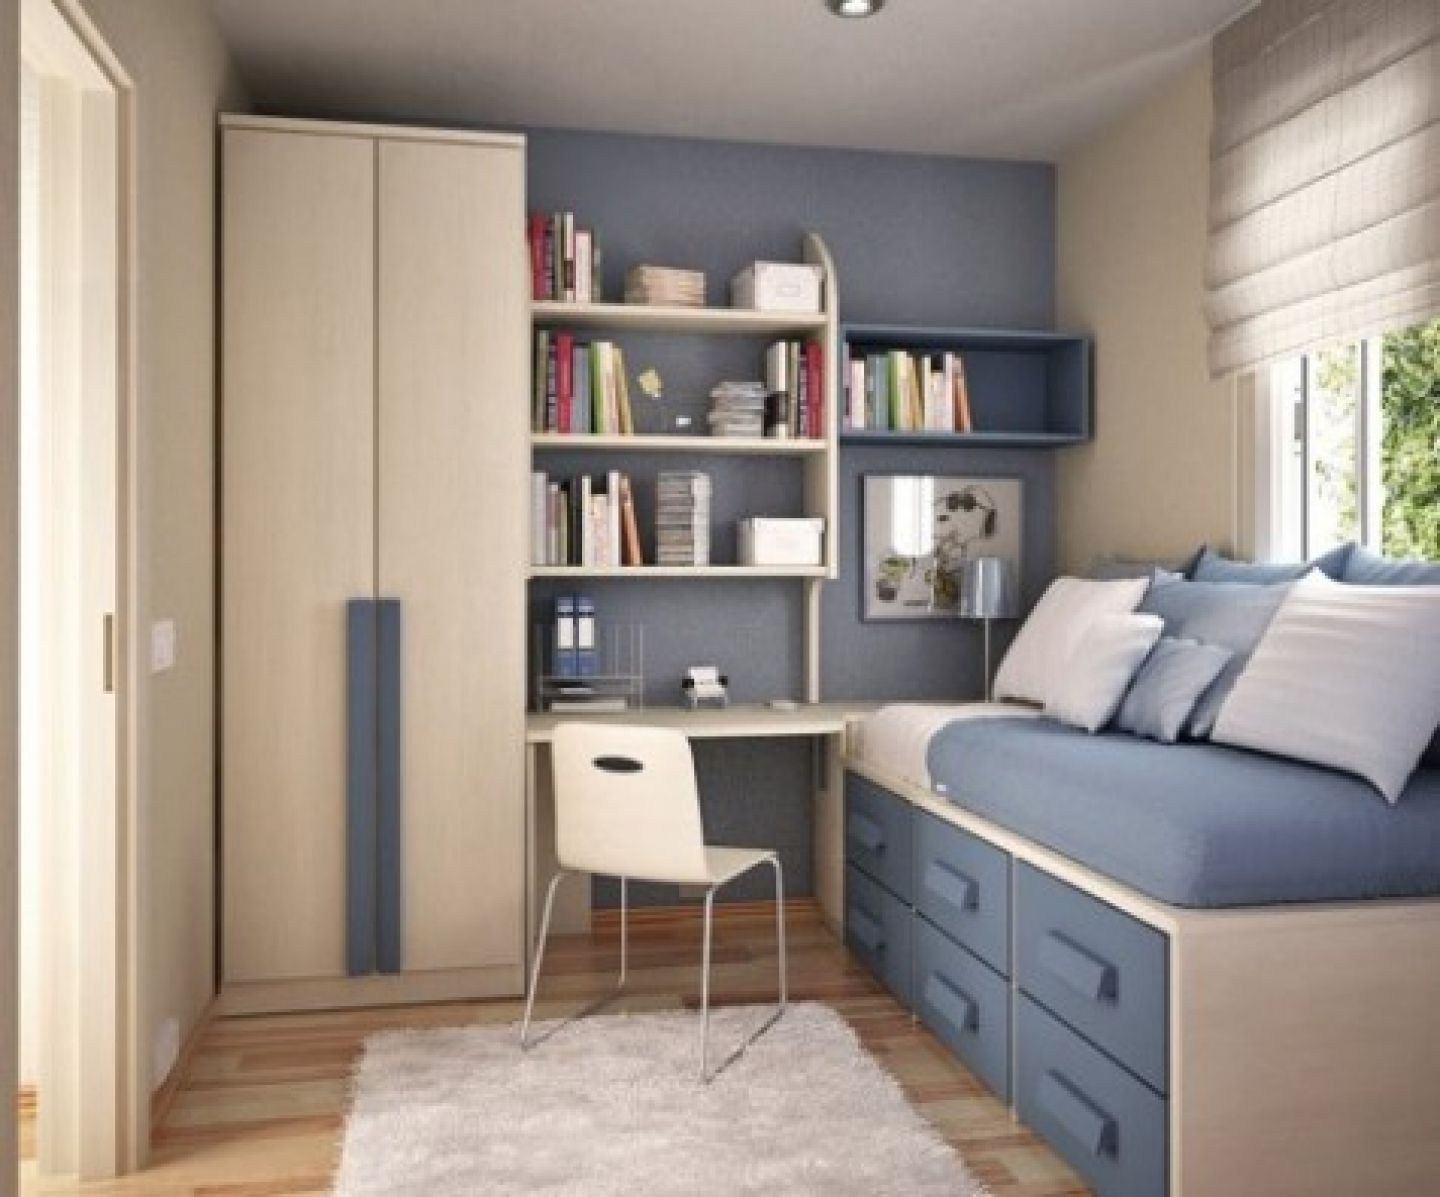 Bedroom Cabinet Design For Small Space | Beds for small ...